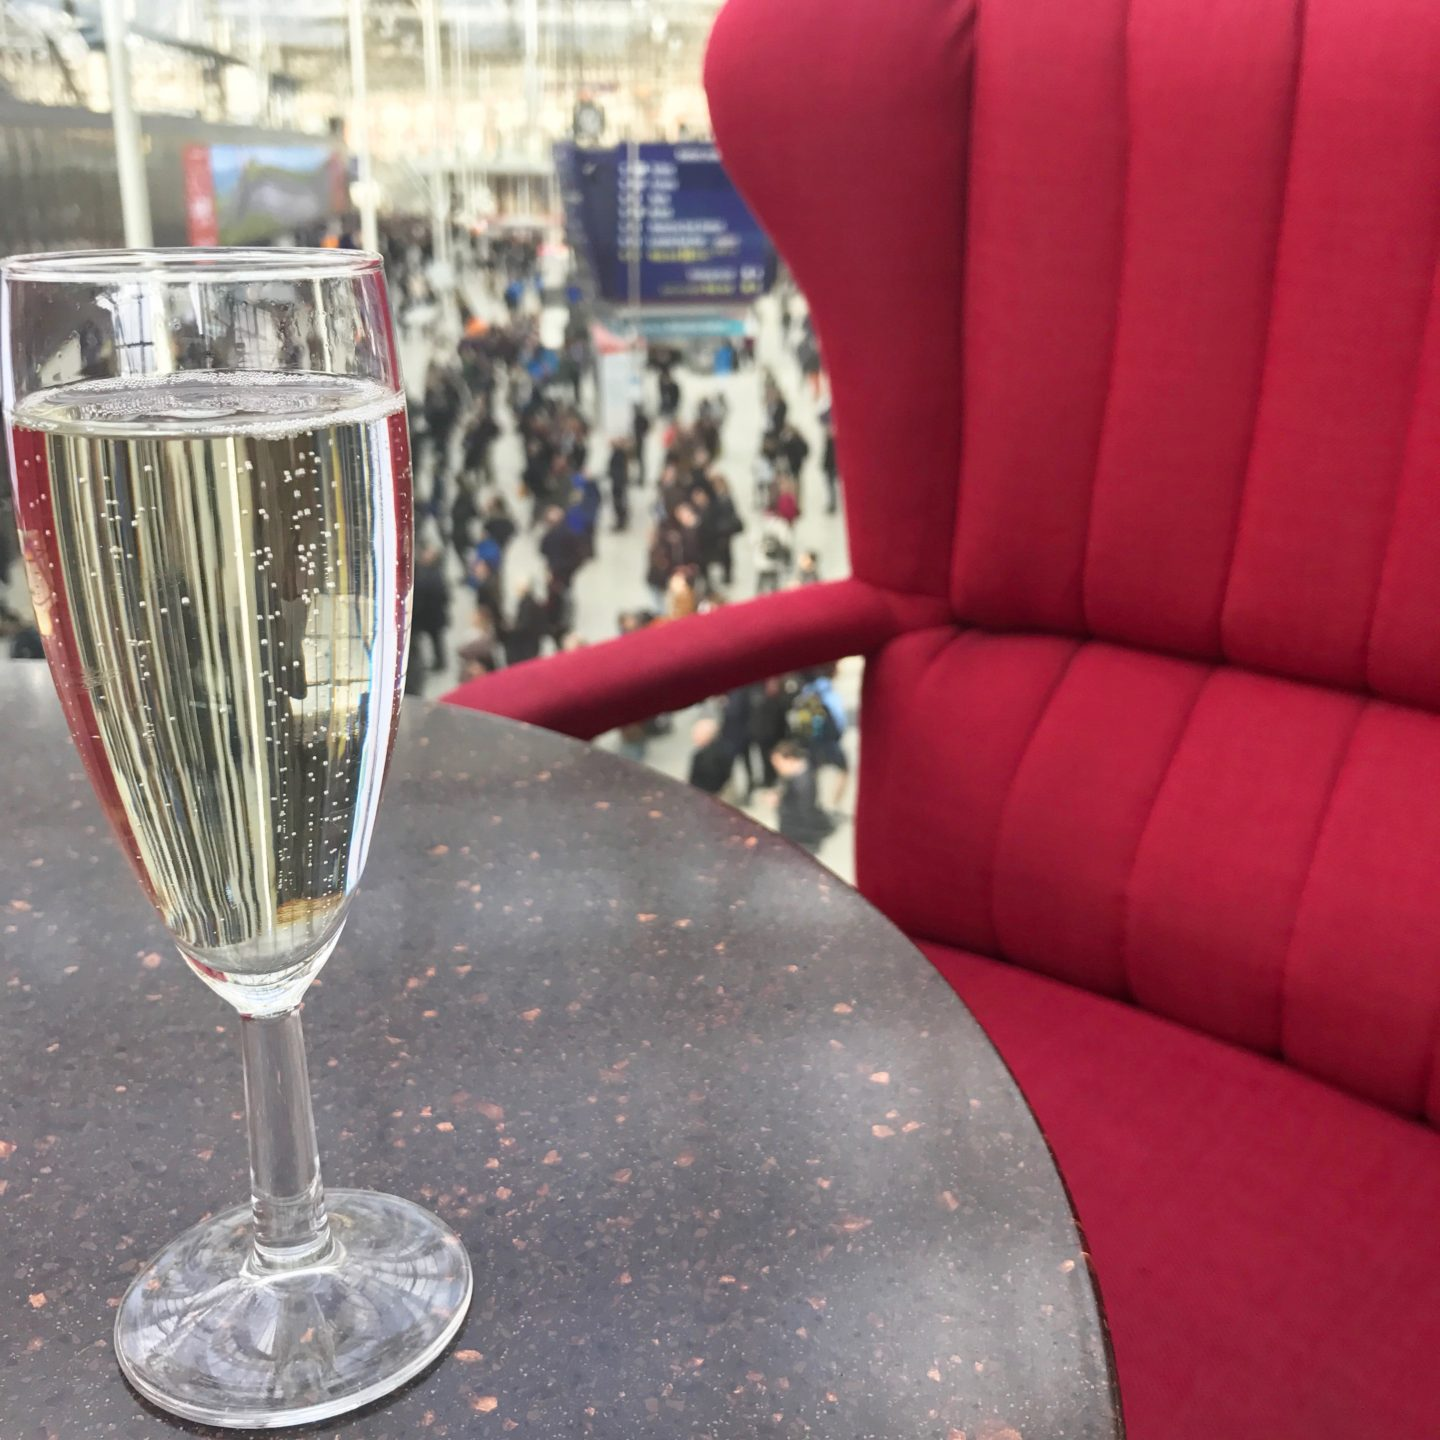 Prosecco at Waterloo Station